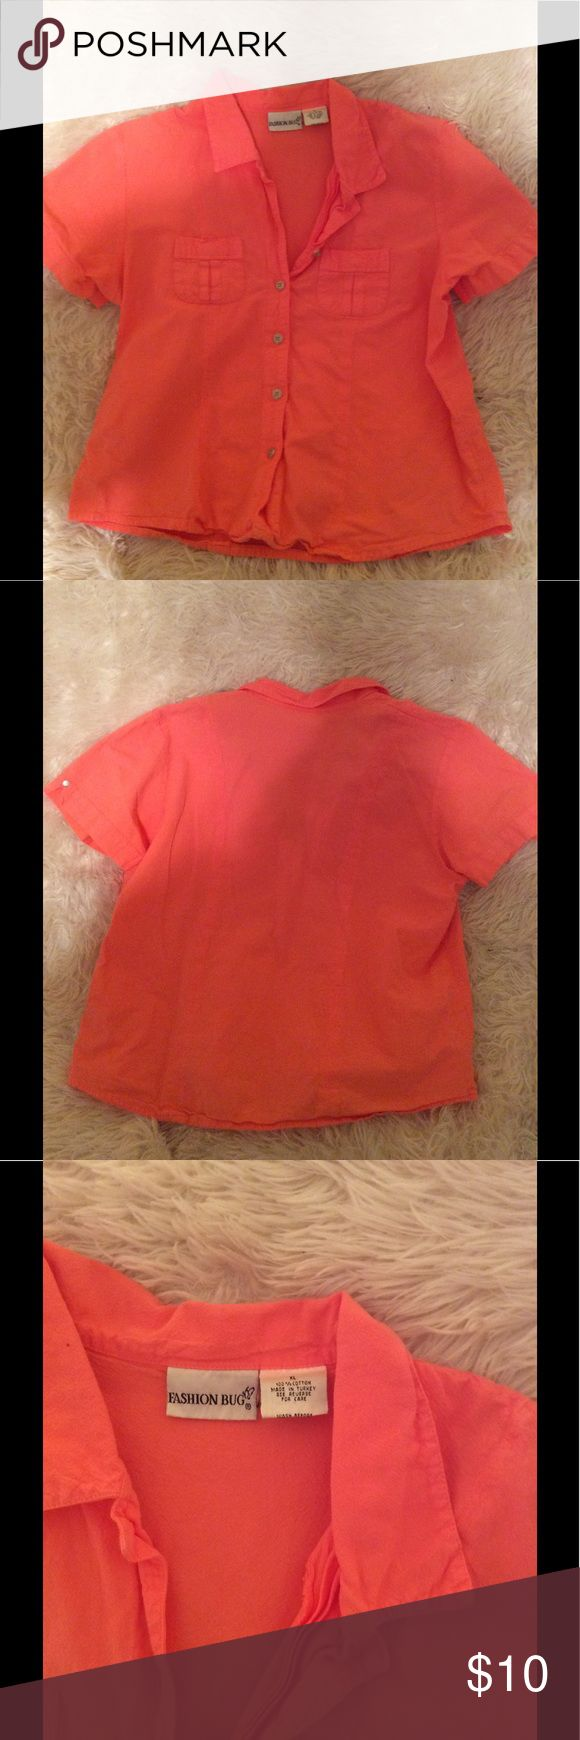 90s Button Down Blouse Classic top! 90s style. Hardly worn. Peach orange color.Rave festival boho gothic punk indie girly 90s  •Please feel free to make offers! ✅ BOGO $10& under! Sales through Posh only! I am able to model most items I have posted! If I haven't already- just ask 😊 Please ask for measurements if you need them! I include a small gift when gifts are available ☺️ Fashion Bug Tops Button Down Shirts